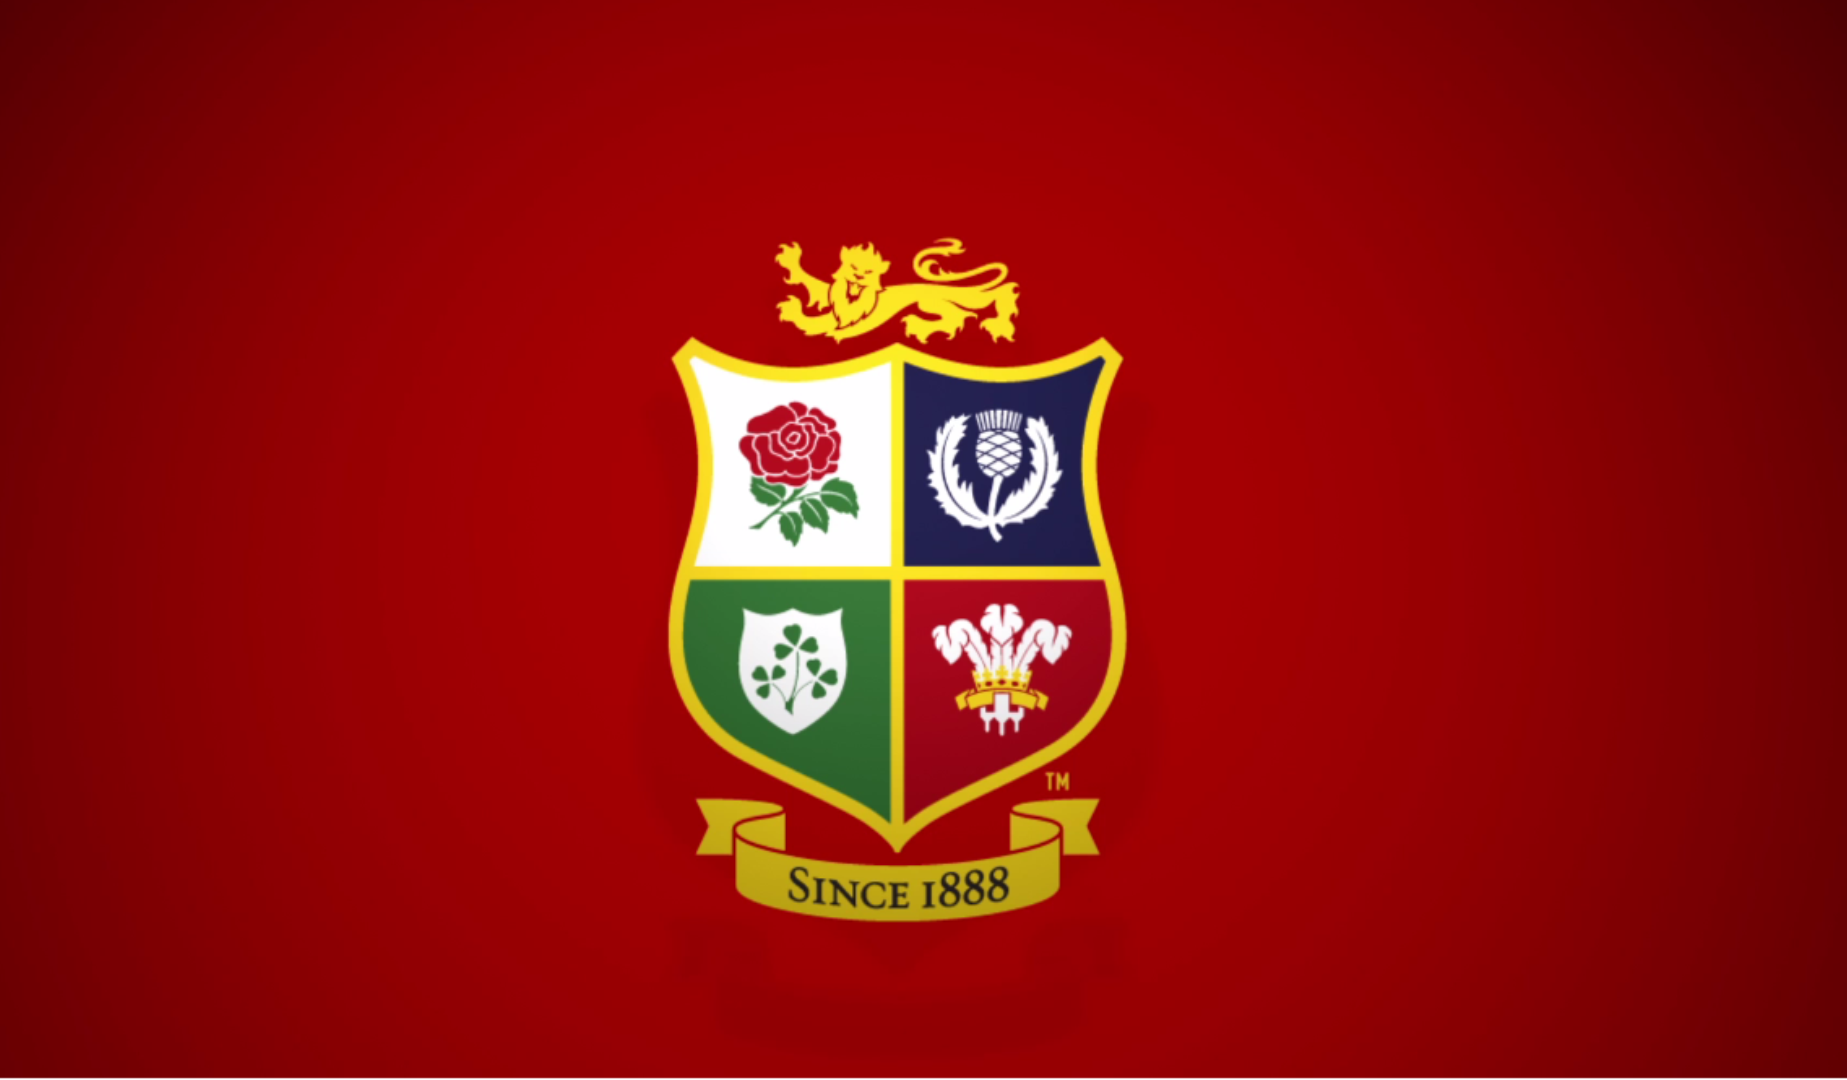 Lions back to the future with 1888 badge